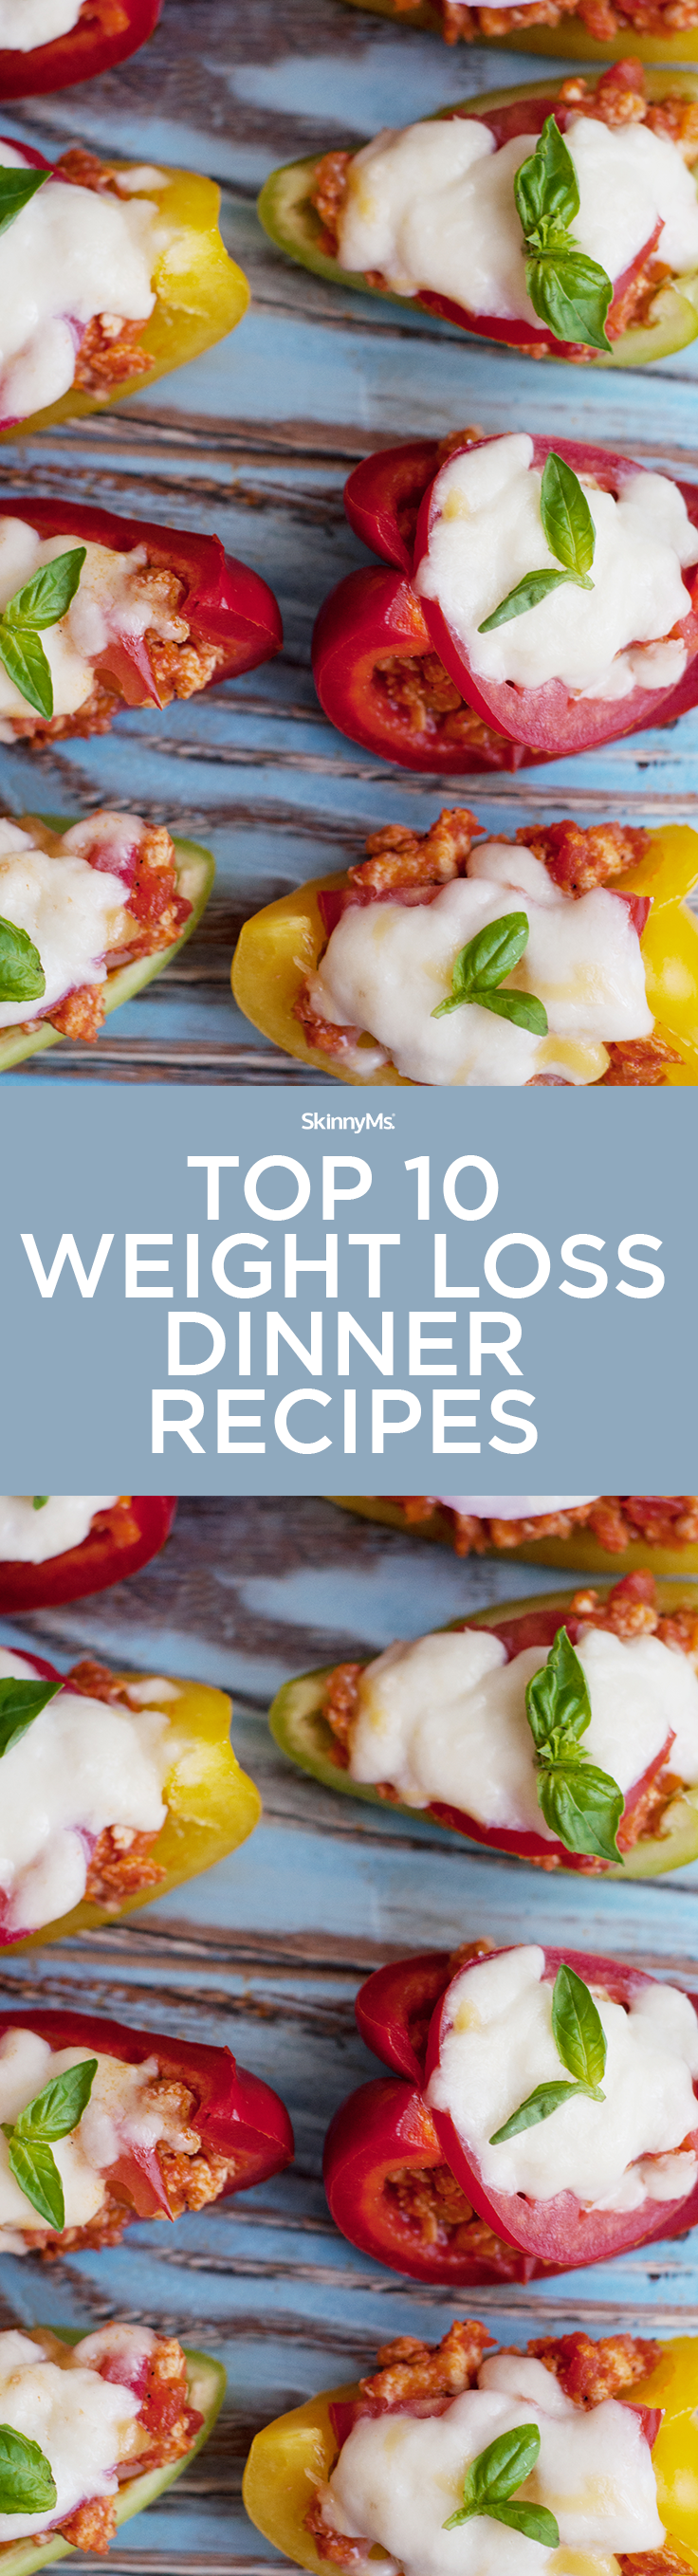 Top 10 Weight Loss Dinner Recipes